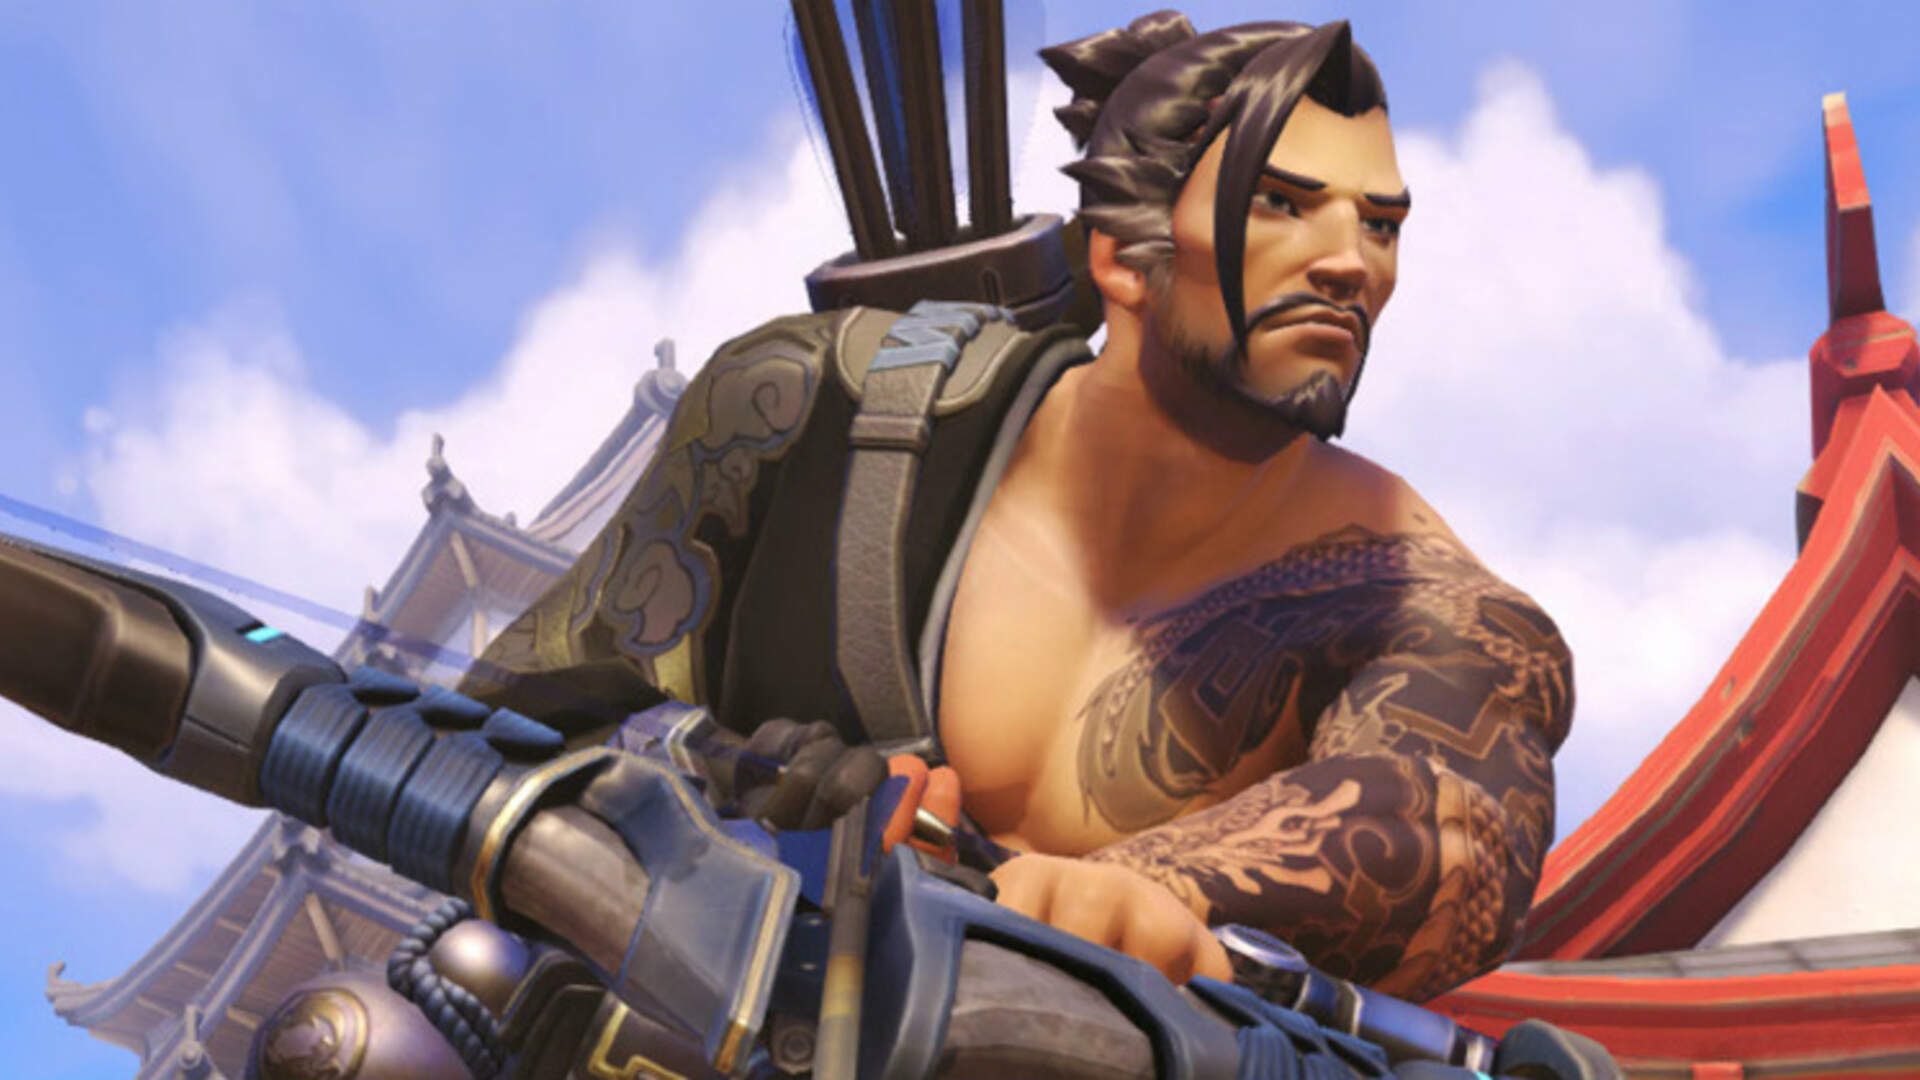 Overwatch Review: Cheers, Love. The Cavalry's Here